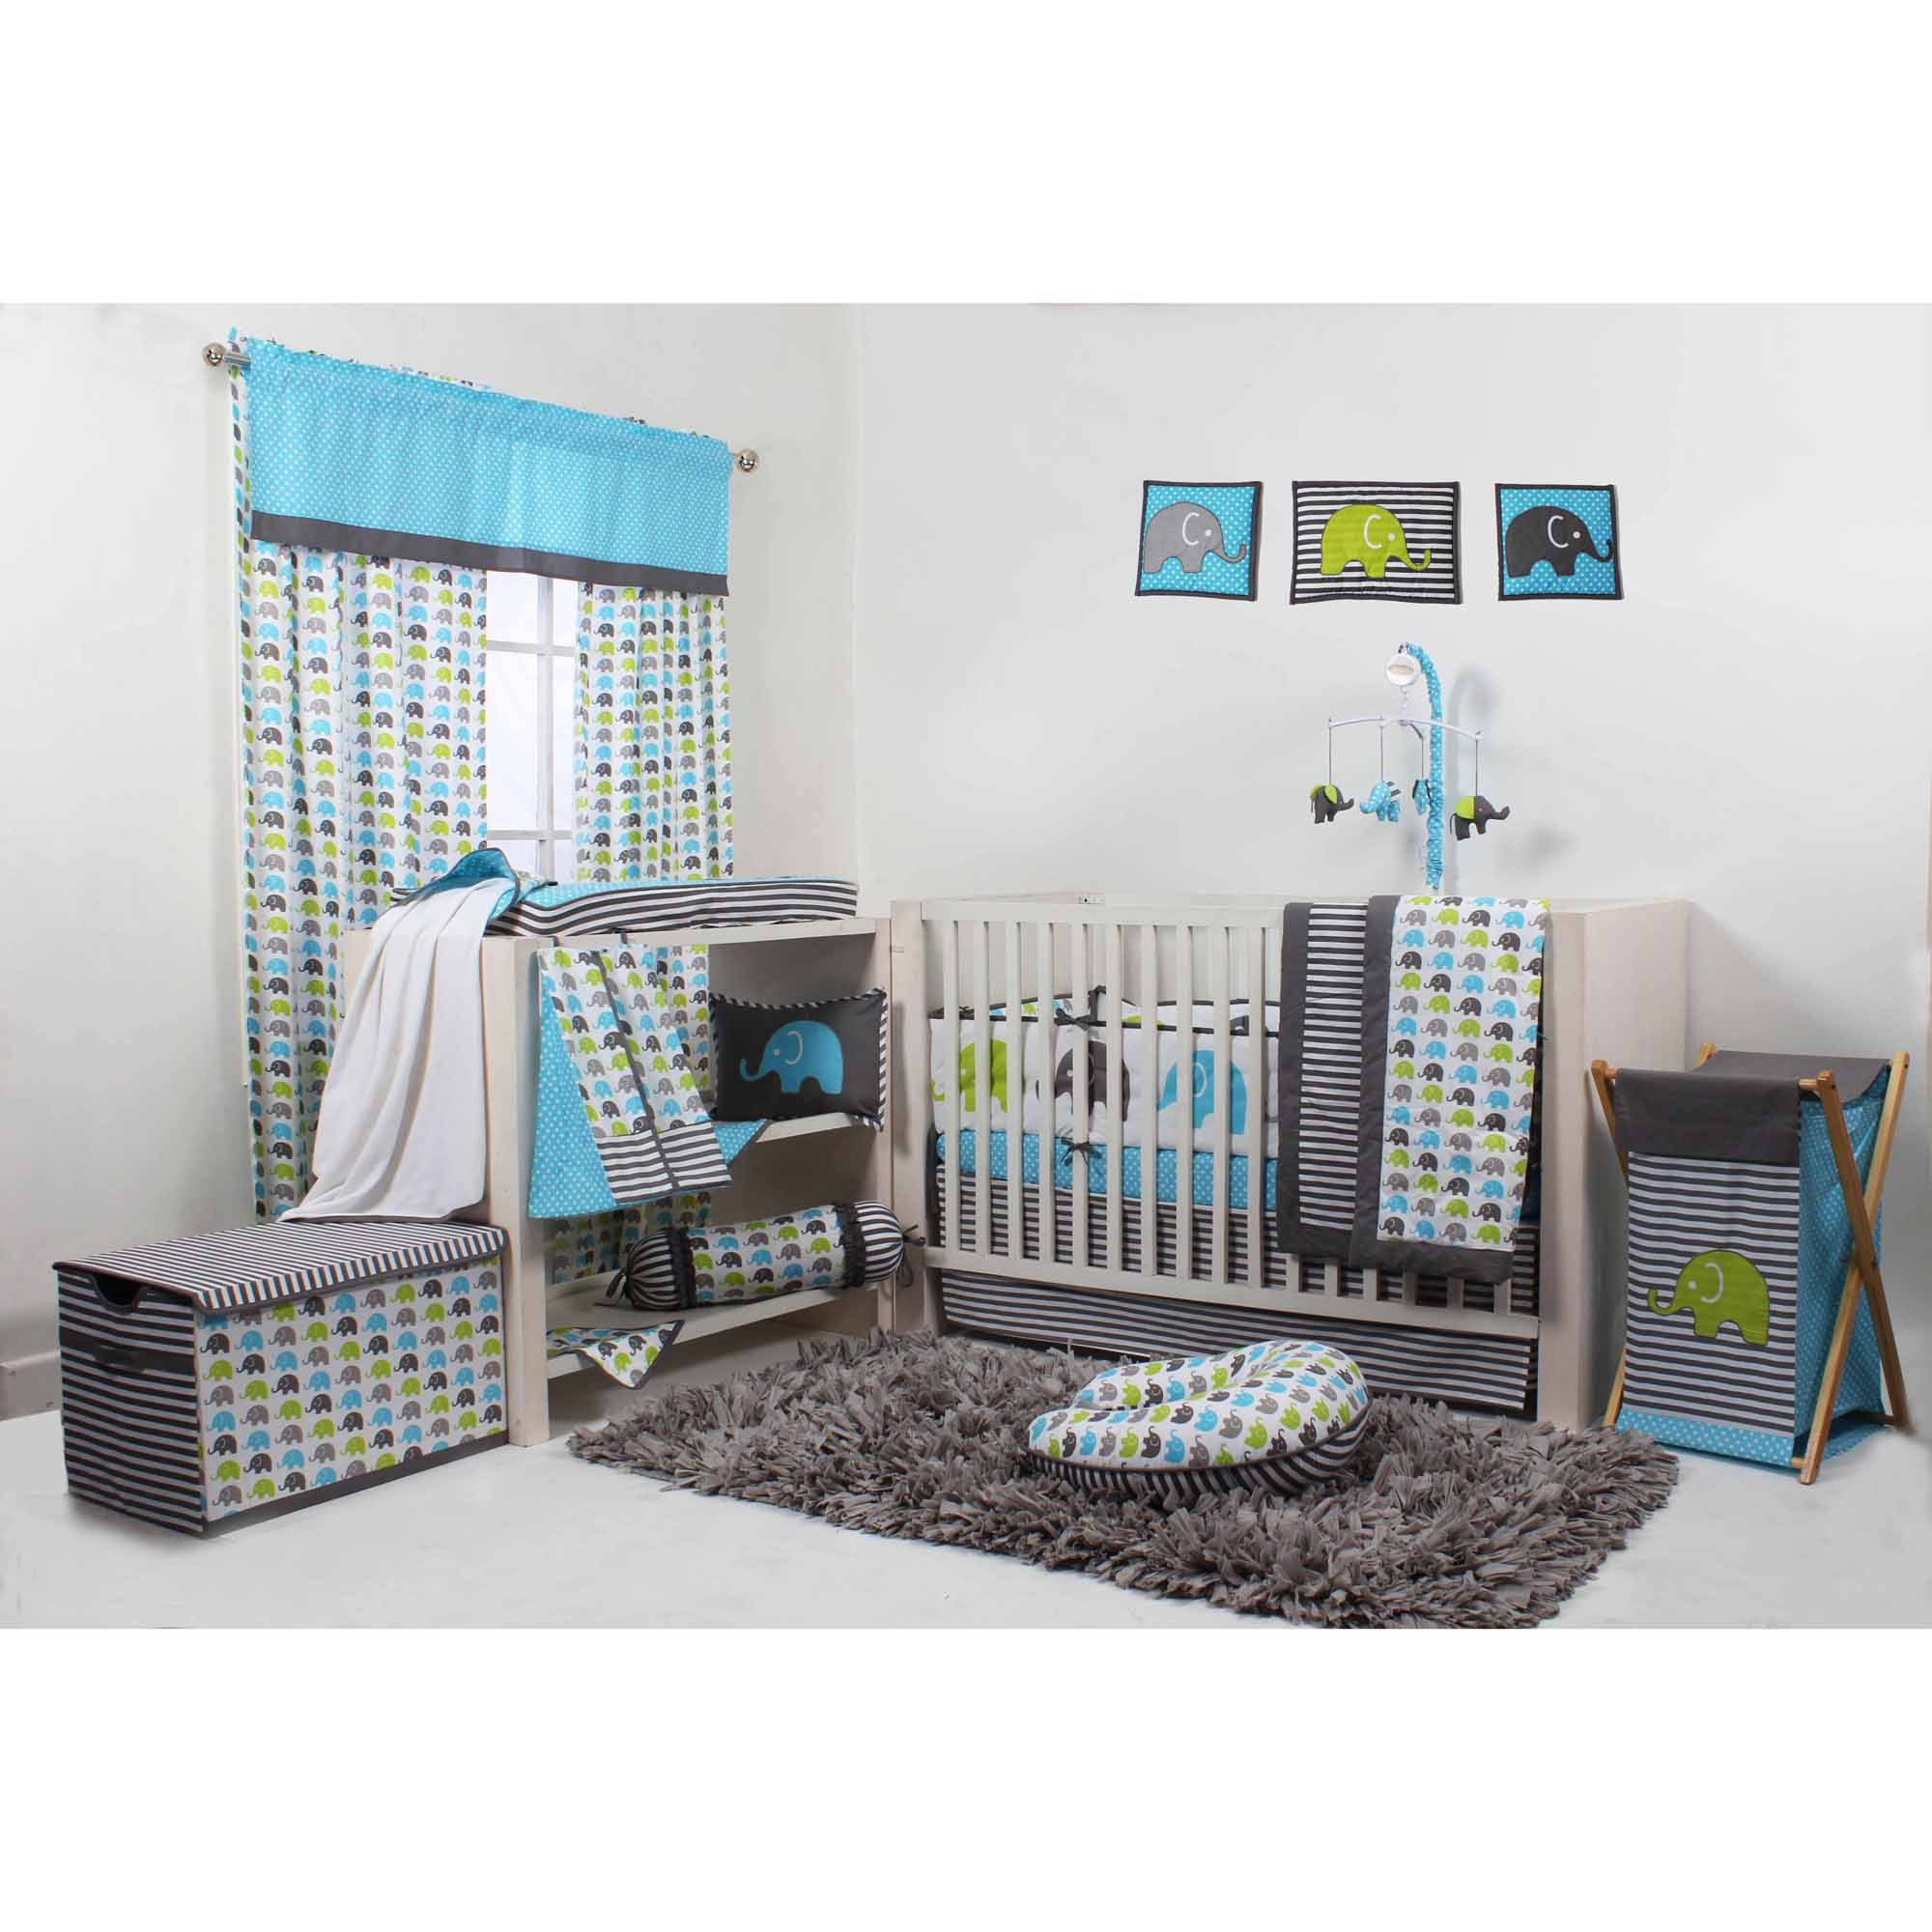 Bacati Elephants 10 Piece Crib Bedding Set Aqua Walmart